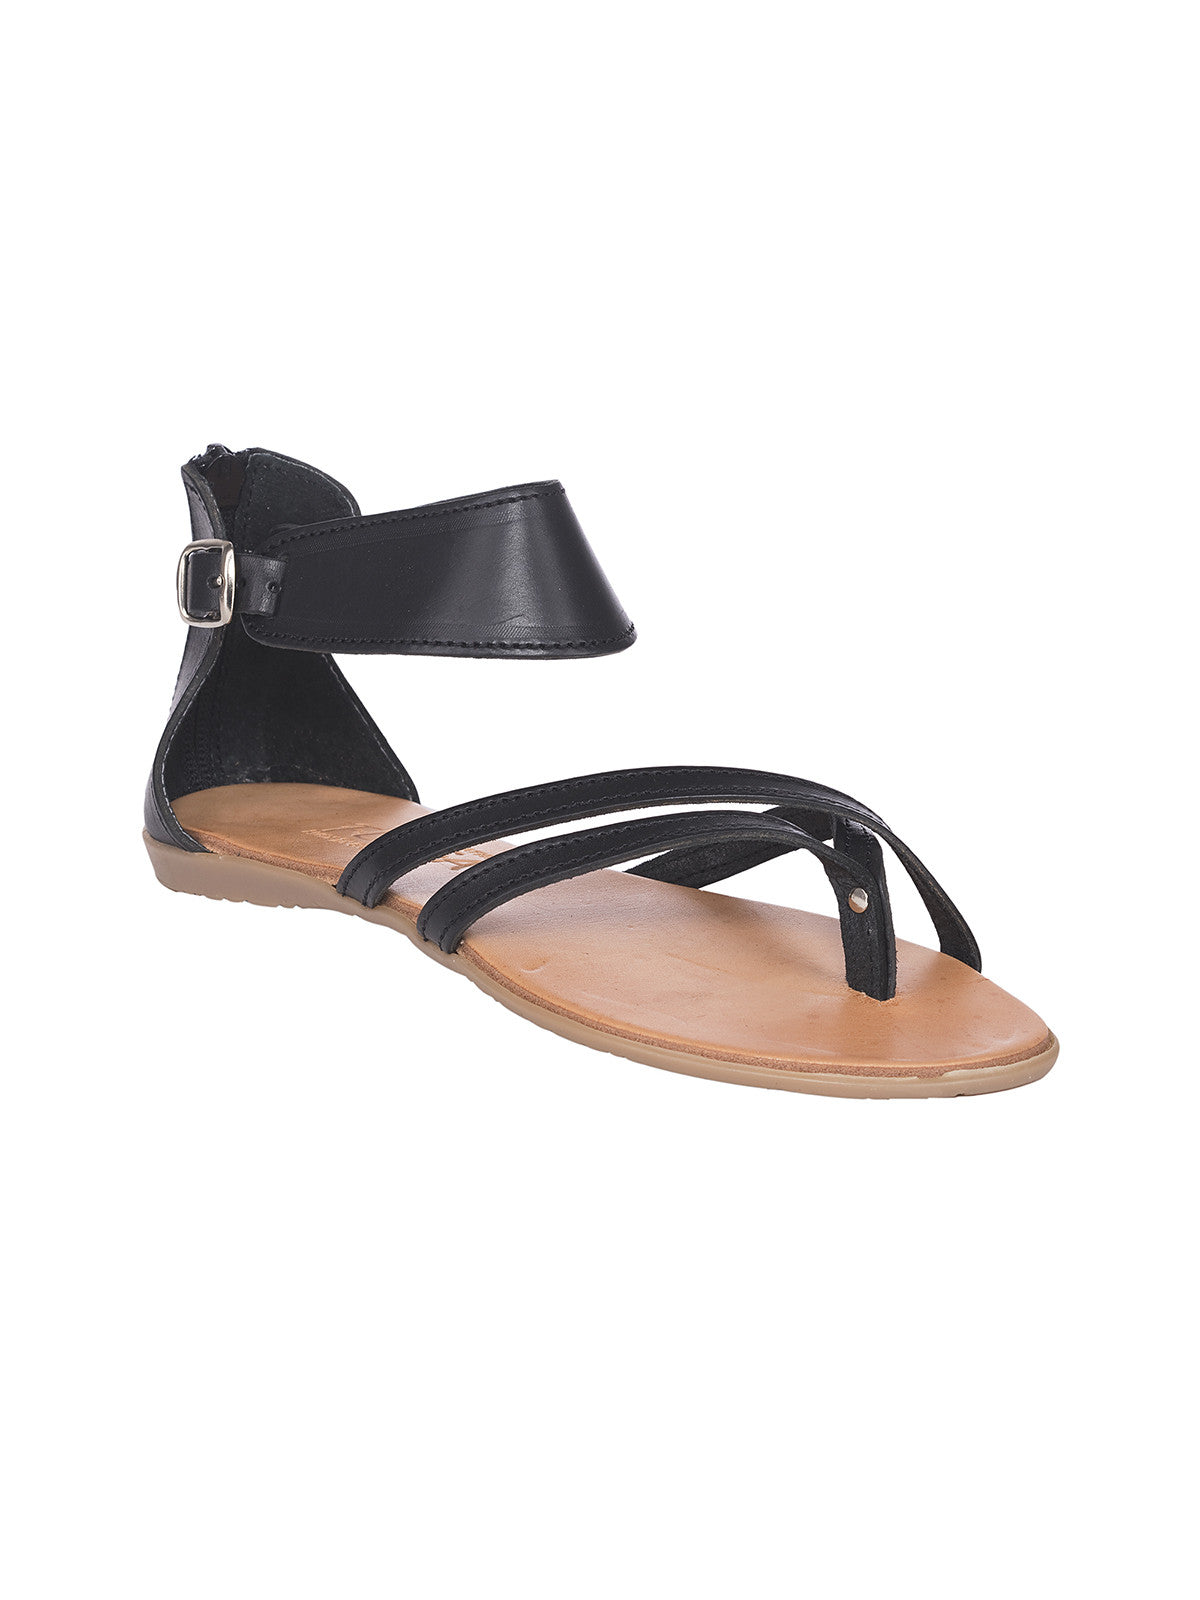 Theodosia Greek Sandals